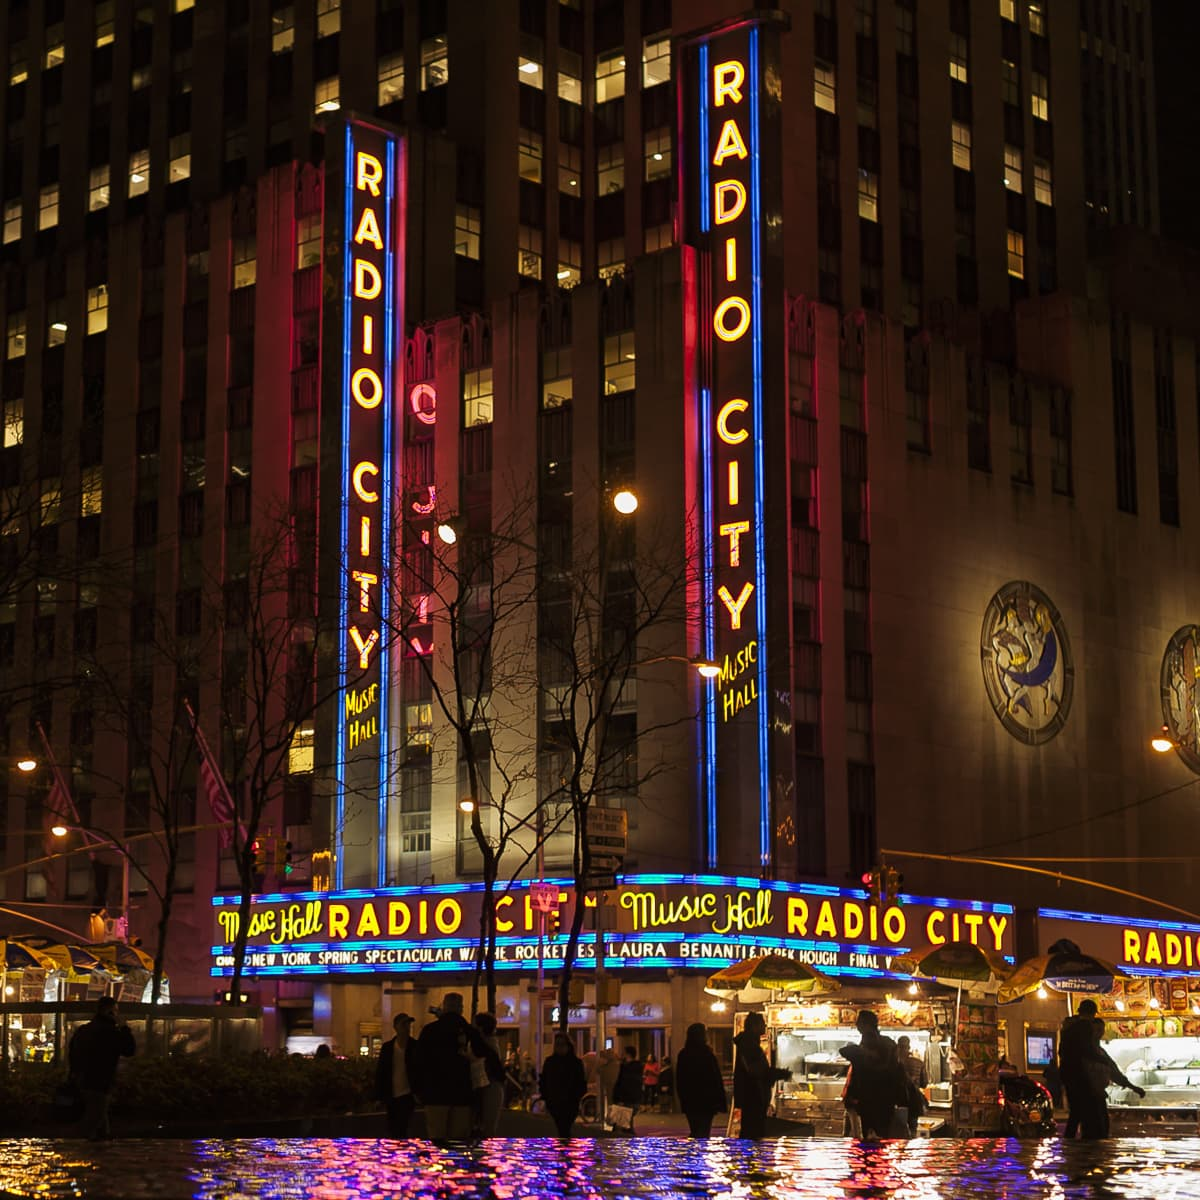 Radio City at night in NYC